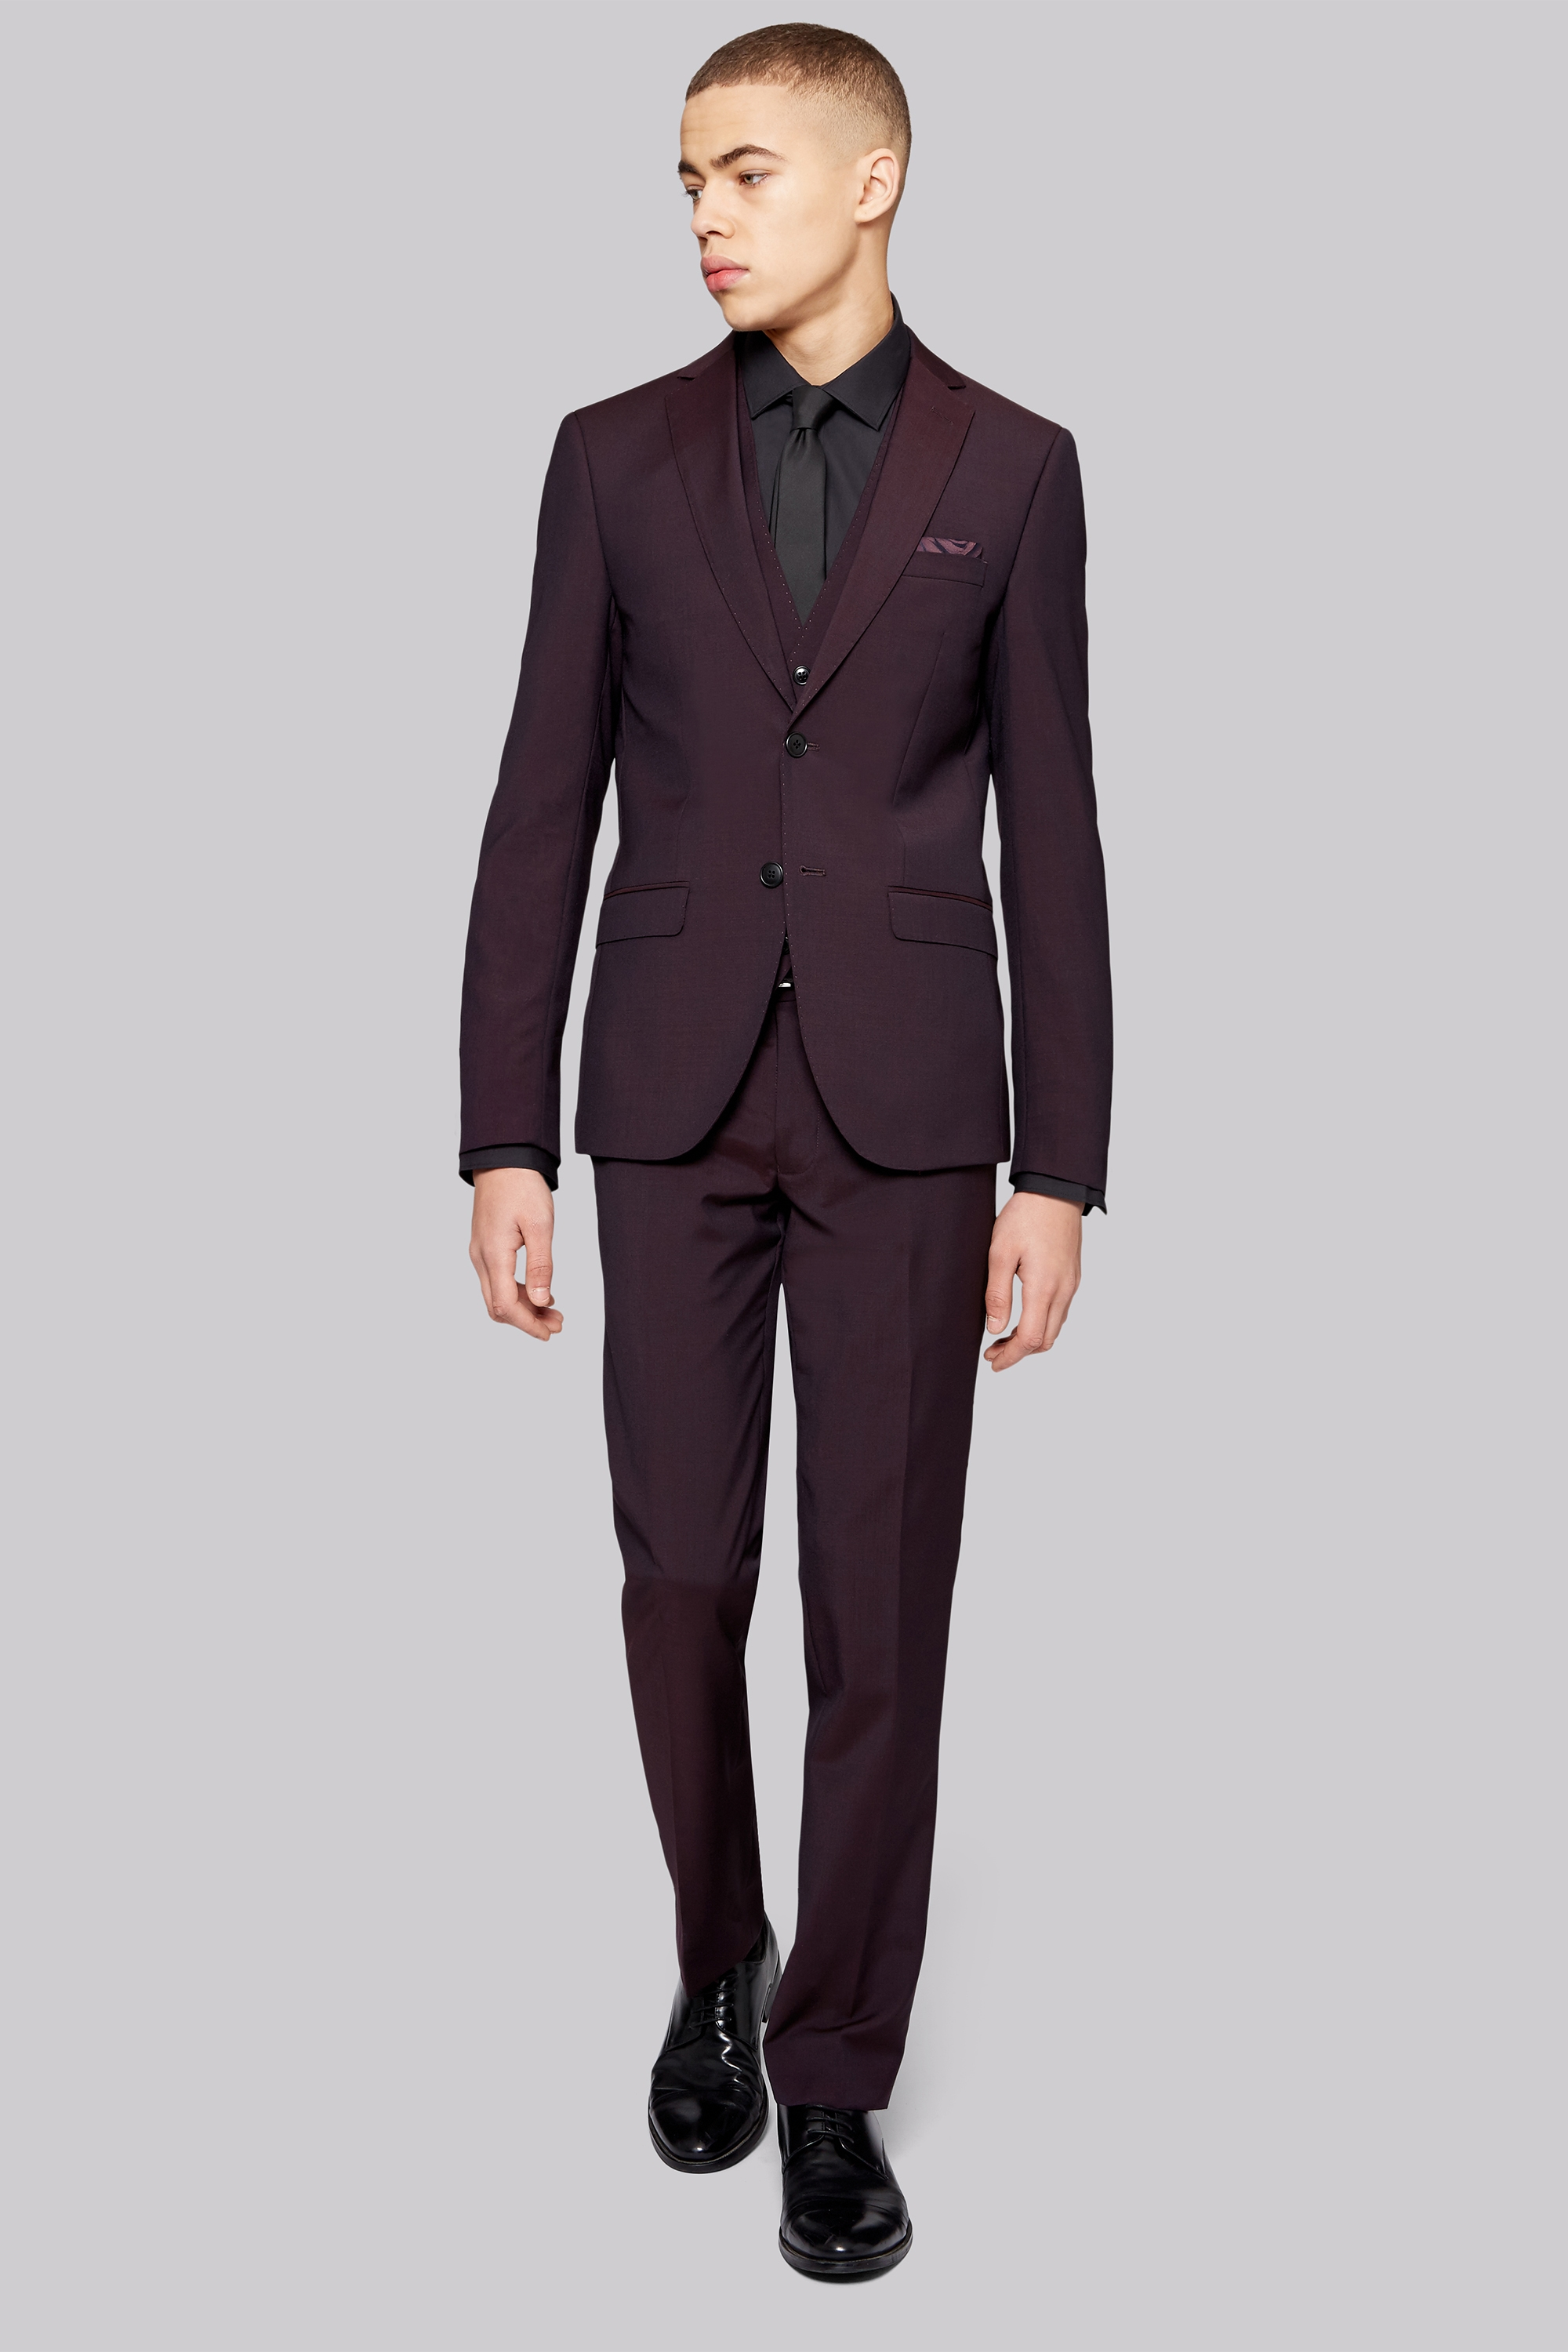 Moss London Skinny Fit Burgundy Suit Jacket